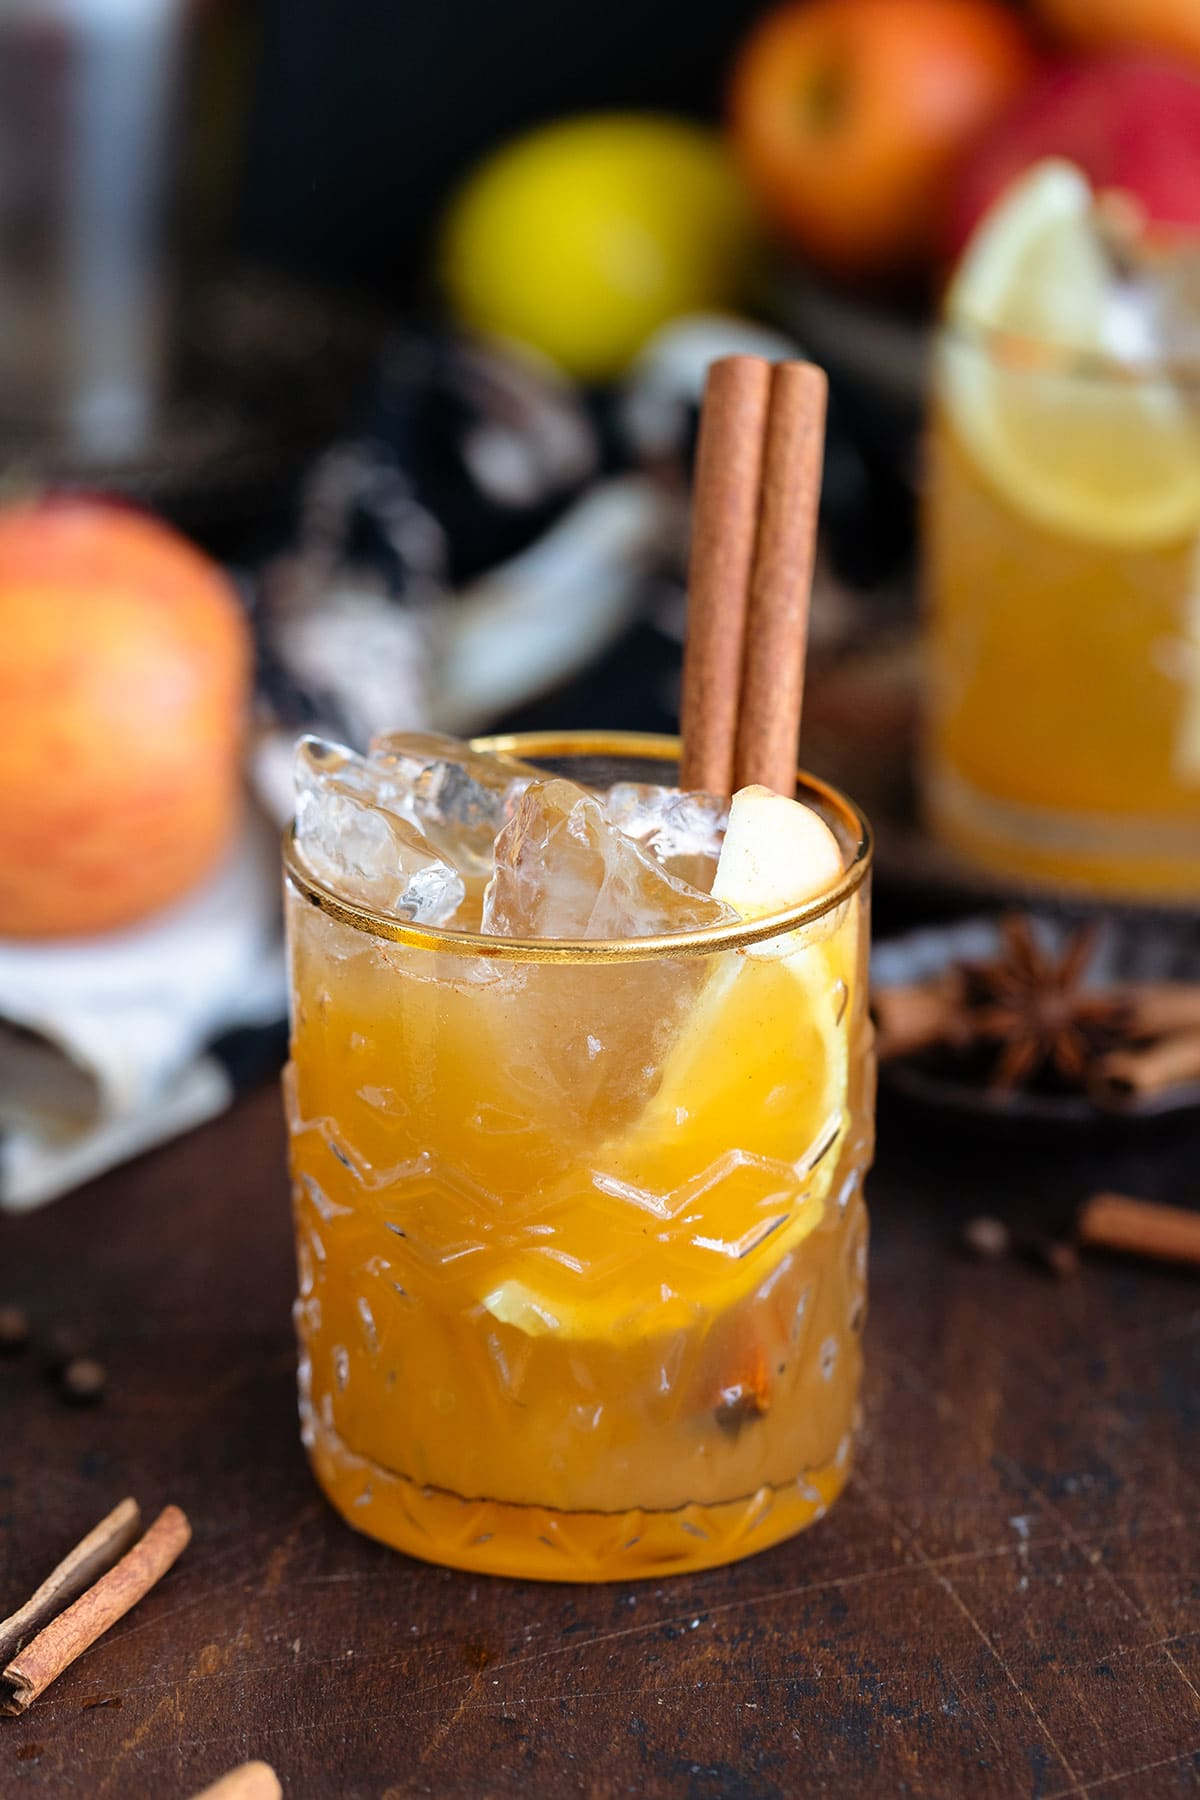 Bourbon cocktail in a glass with a gold rim and garnished with a cinnamon stick on a dark wooden background.